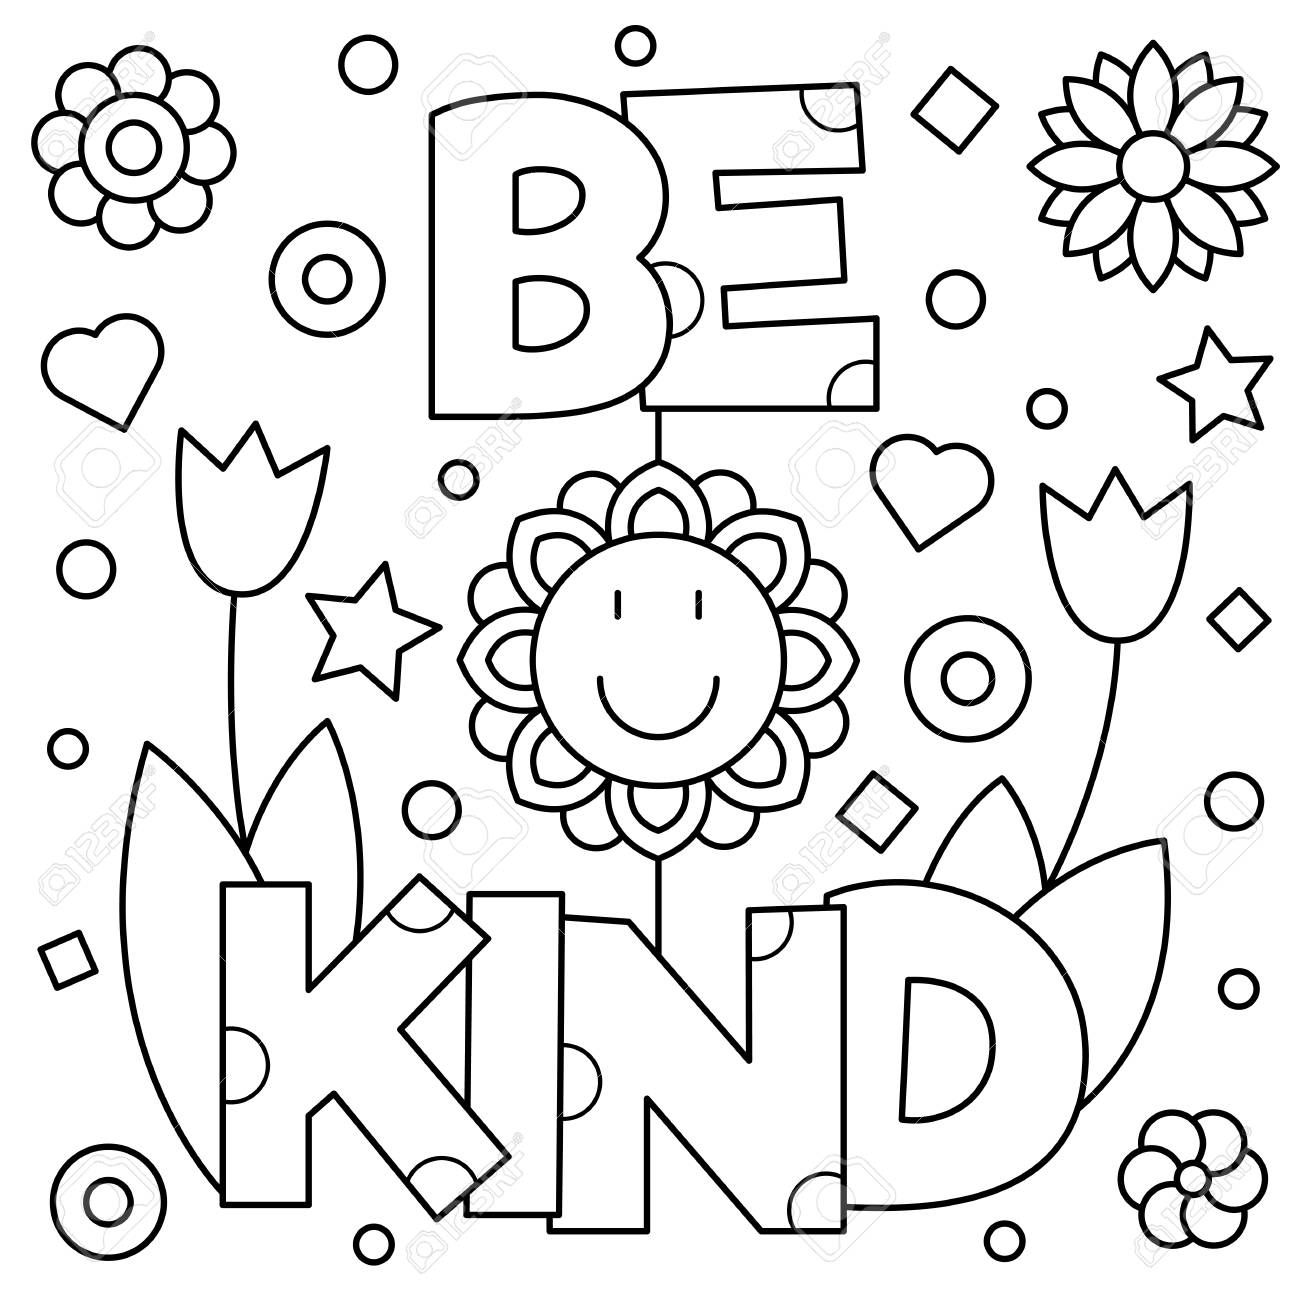 Be Kind Coloring Page Black And White Vector Illustration Love Coloring Pages Coloring Pages Inspirational Coloring Pages